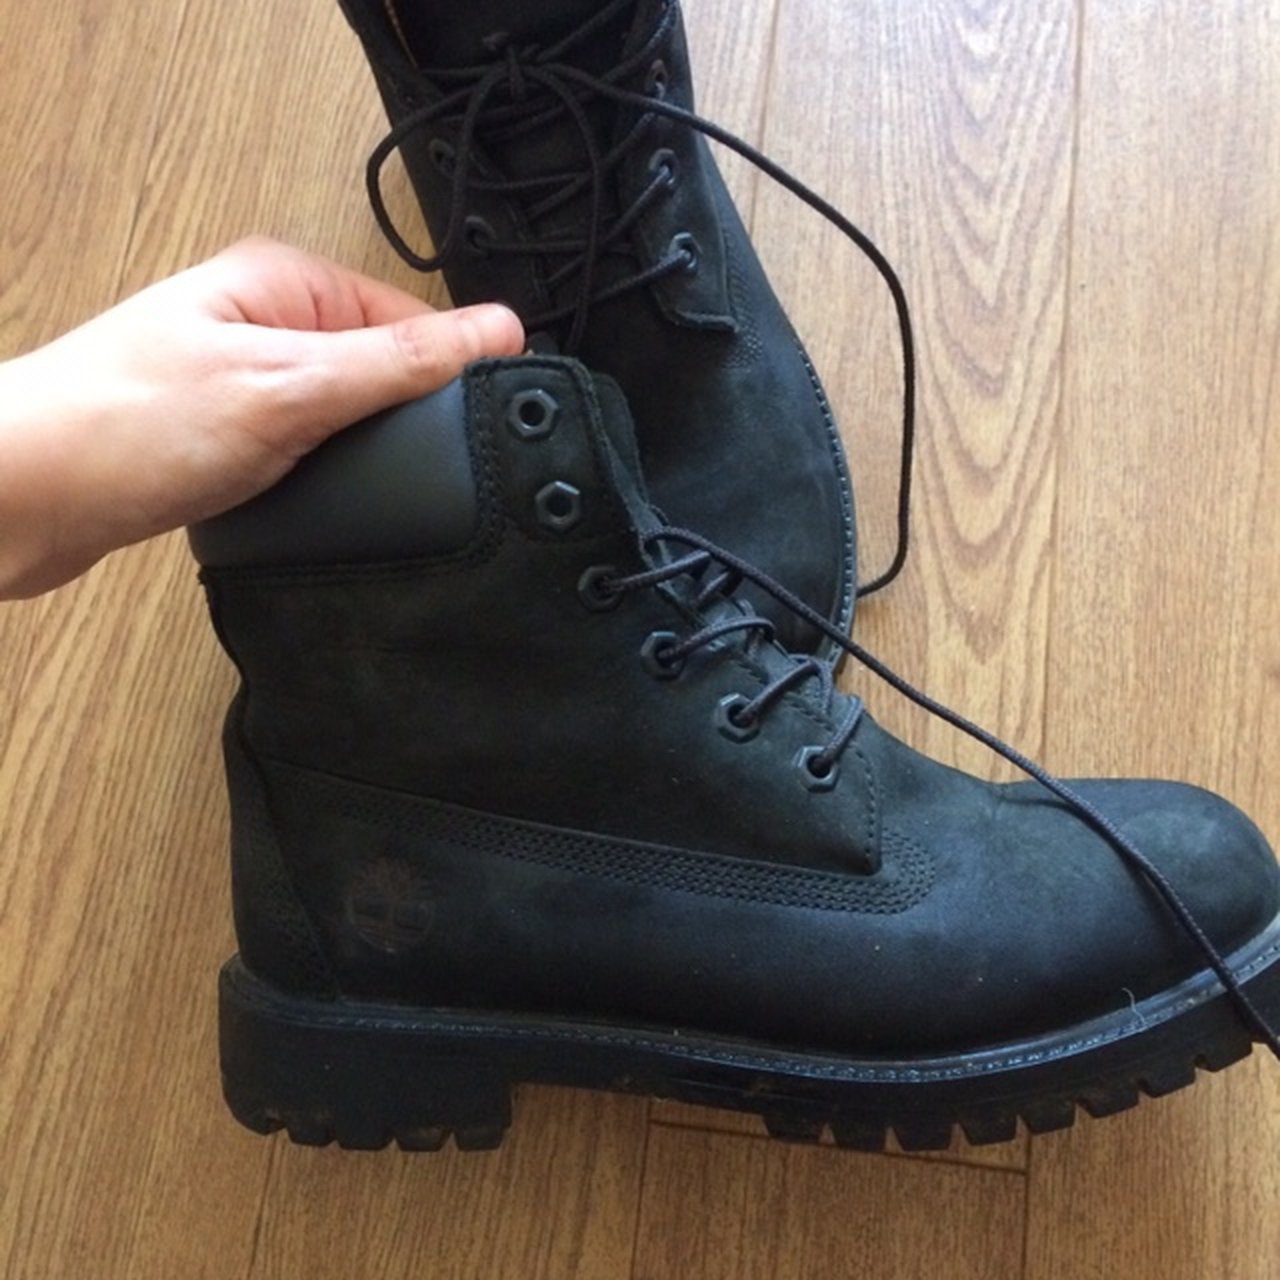 c168fde6f73 RESERVED Size 5.5 will fit a normal size 5. Black boots but - Depop